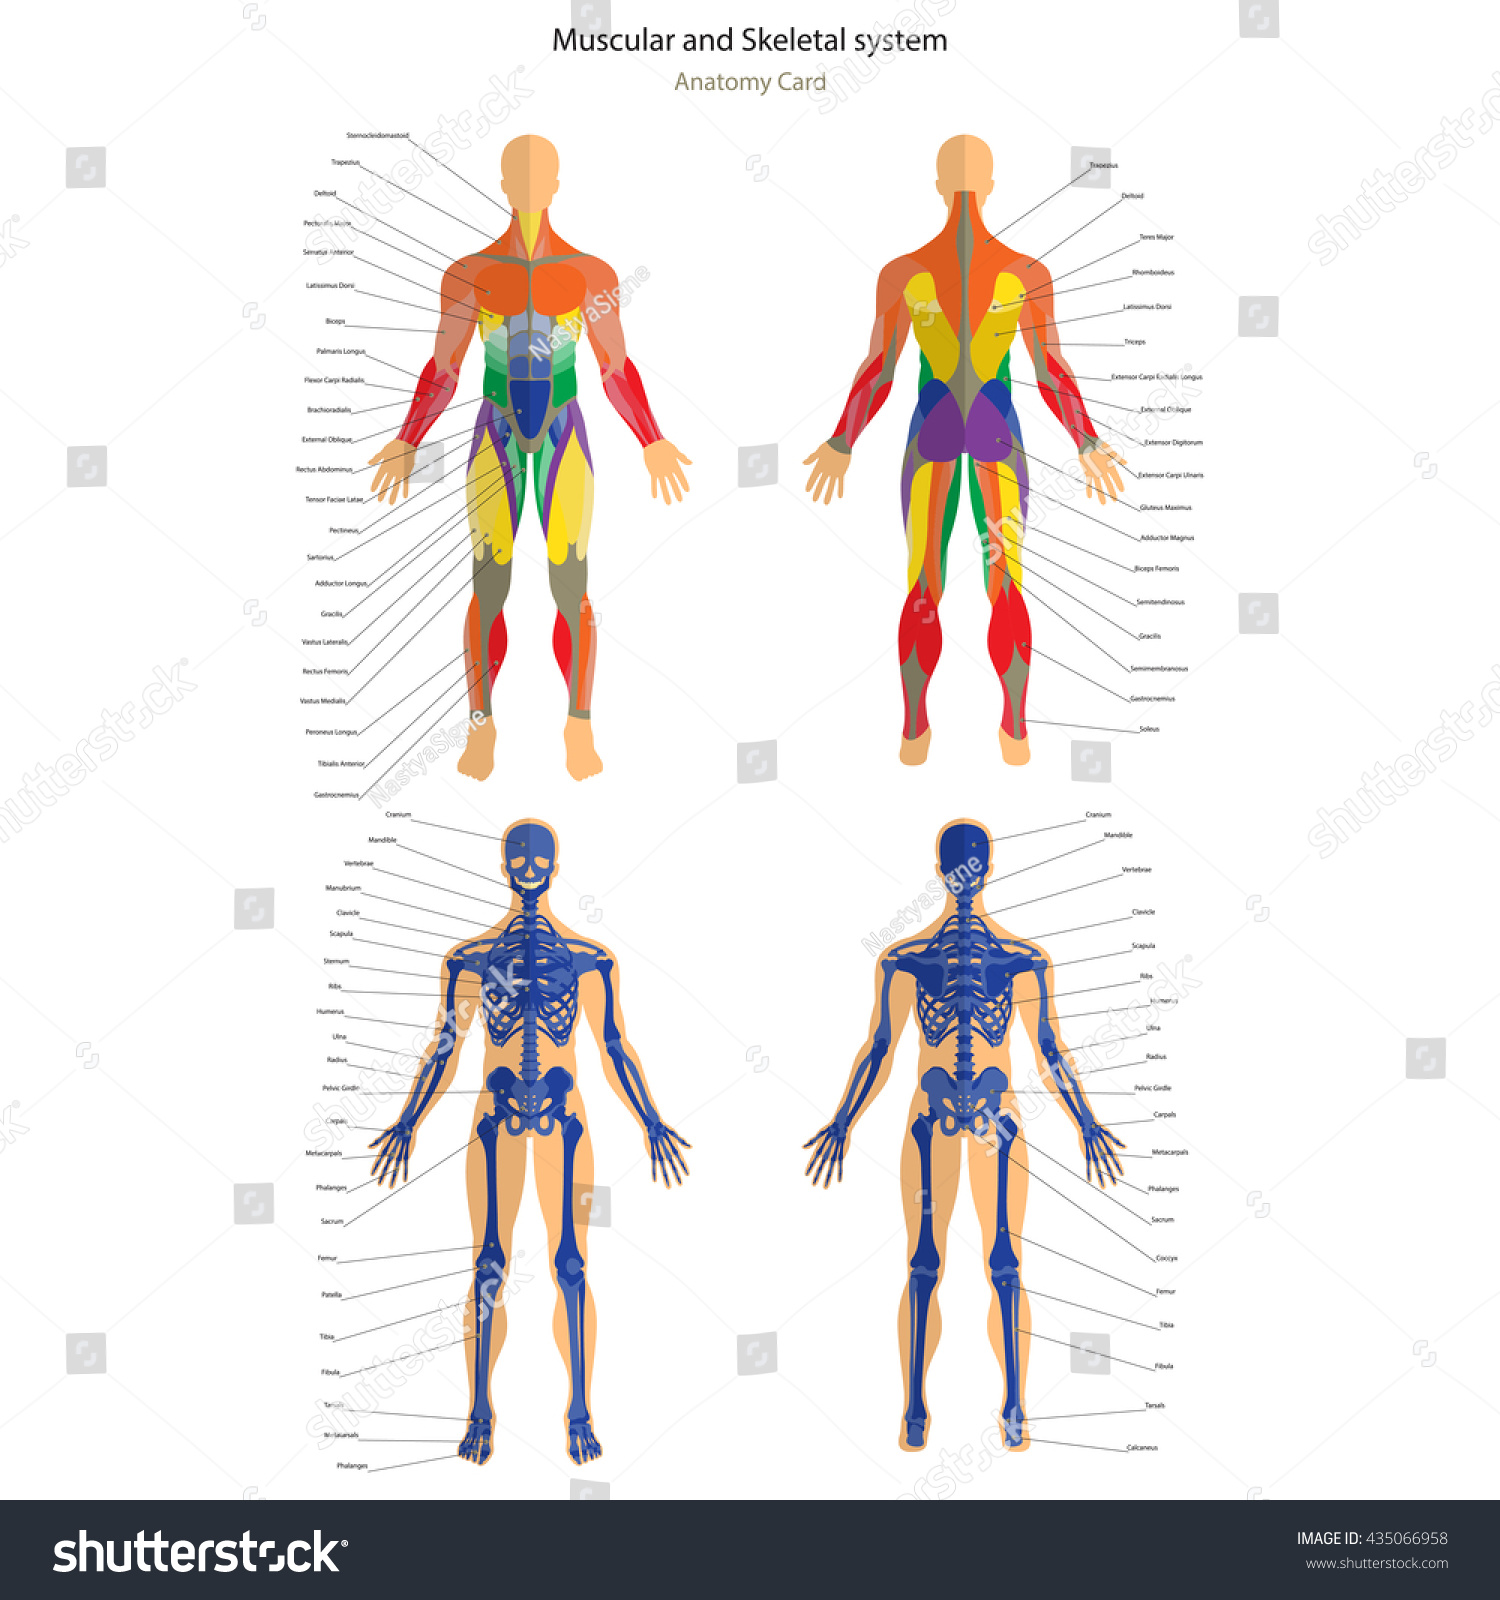 Anatomy Guide Male Skeleton Muscular System Stock Photo Photo